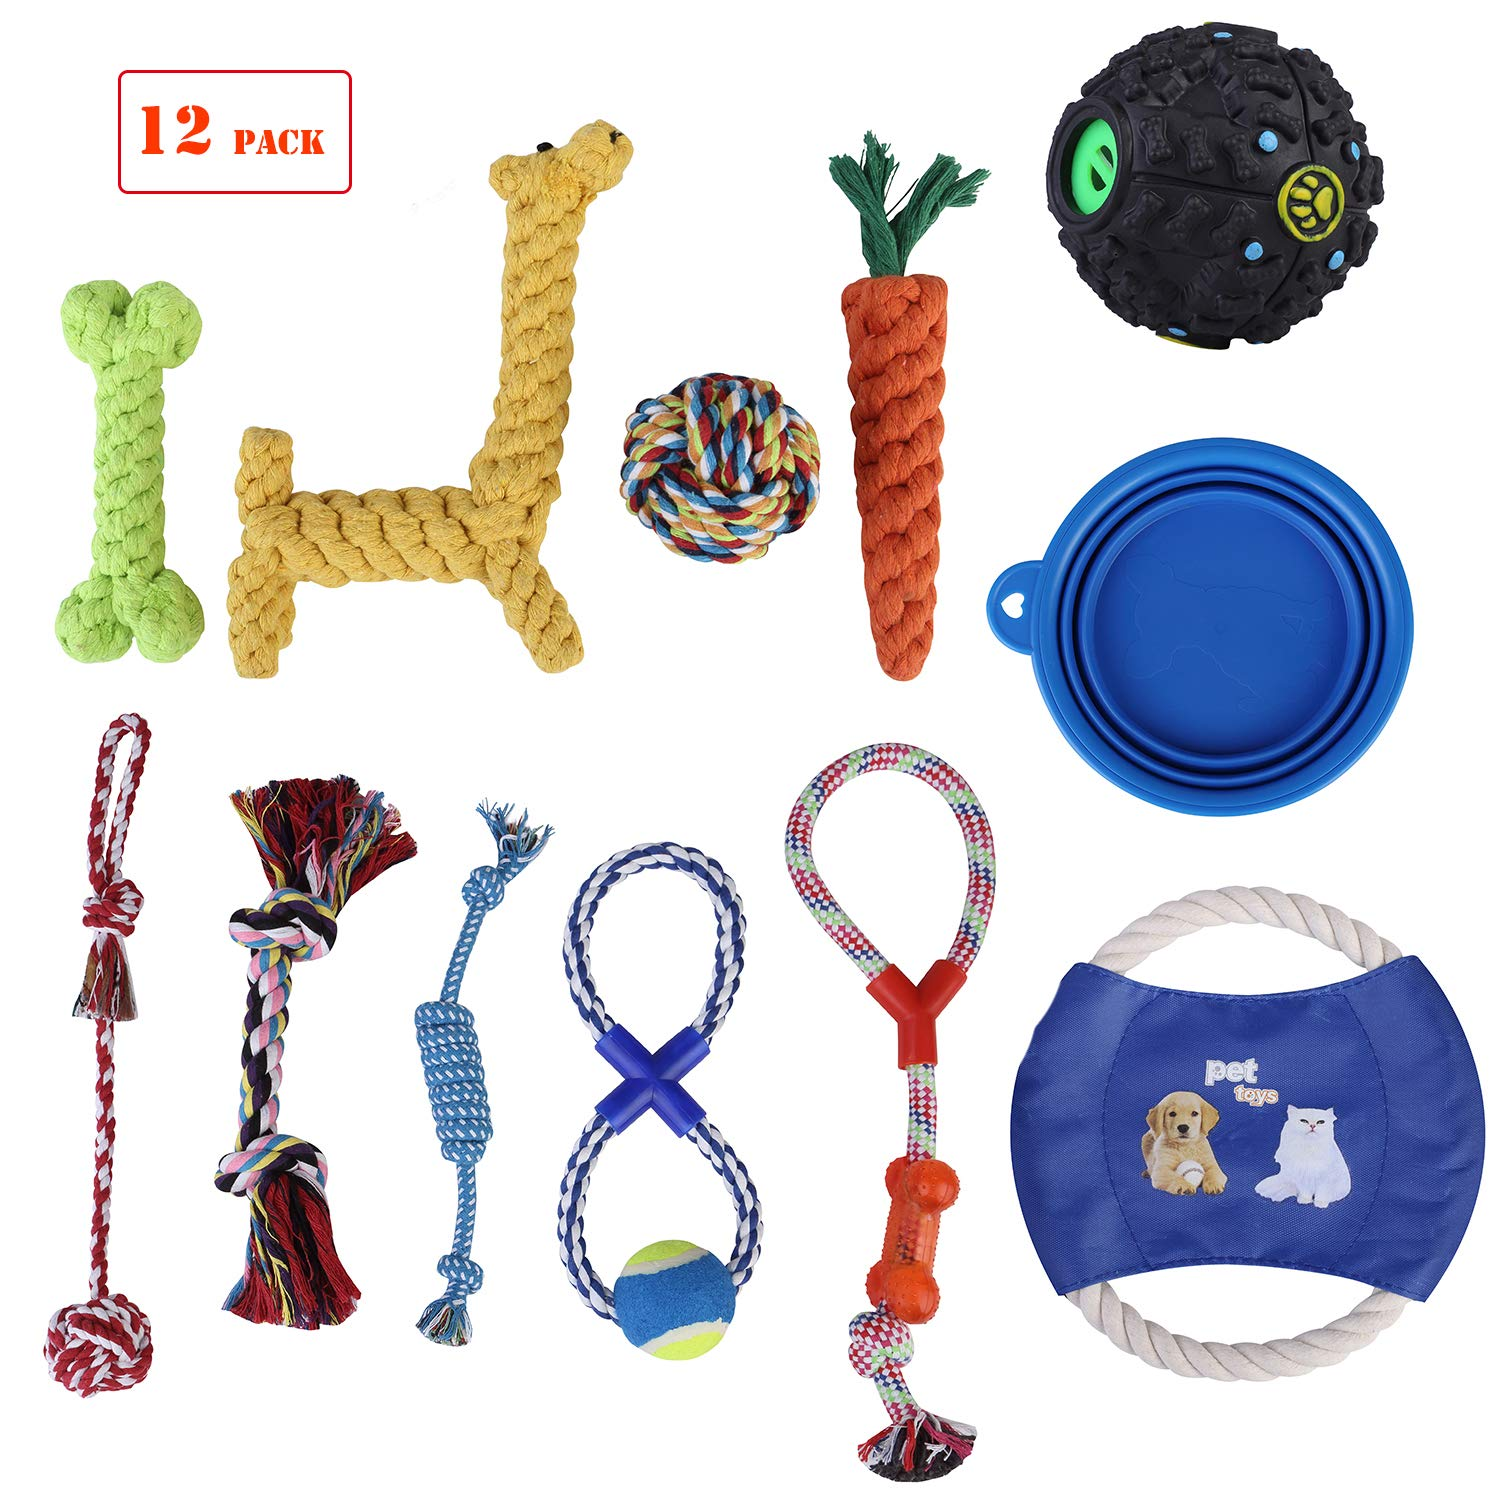 HBPET Dog Toys Value Pack 11 Pcs Puppy Pet Dog Toy Gift Set,Dog Teething Training Funny Toys-Rope Toys,Squeaky Ball,Chew Toys,Frisbee Collapsible Silicone Pet Bowl HBCW12-Pack